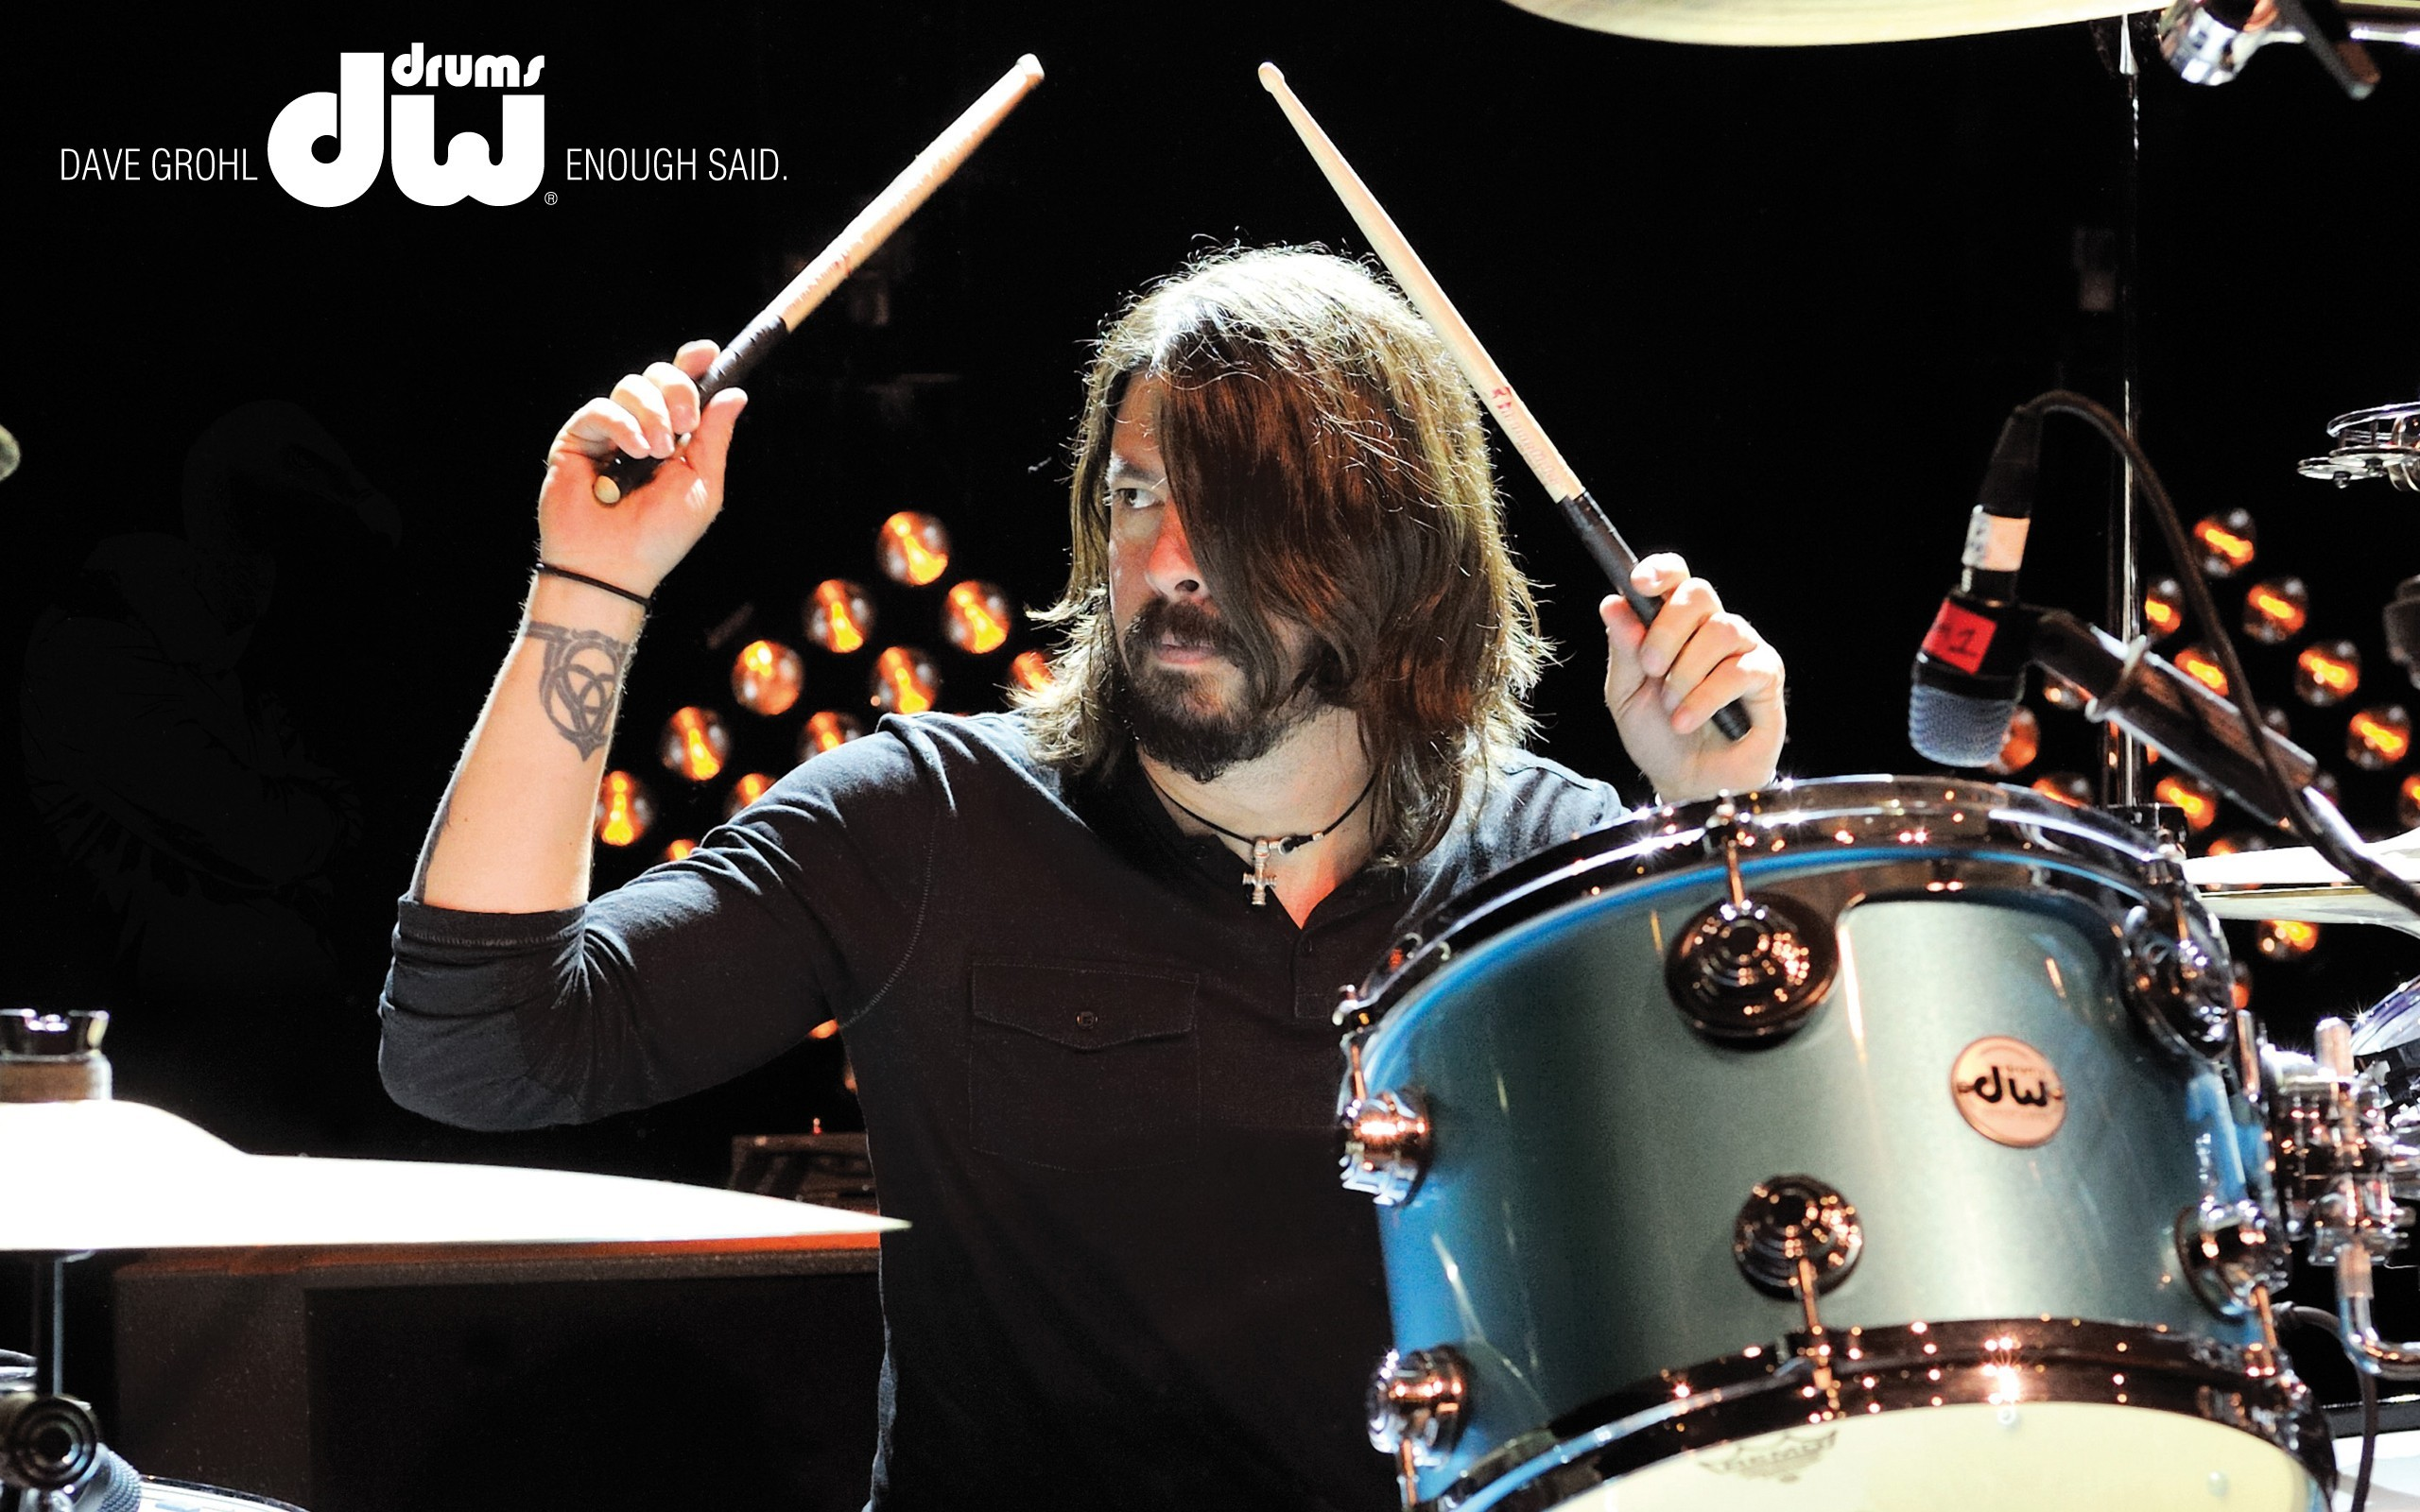 Dave Grohl Foo Fighters Drums Music Wallpaper